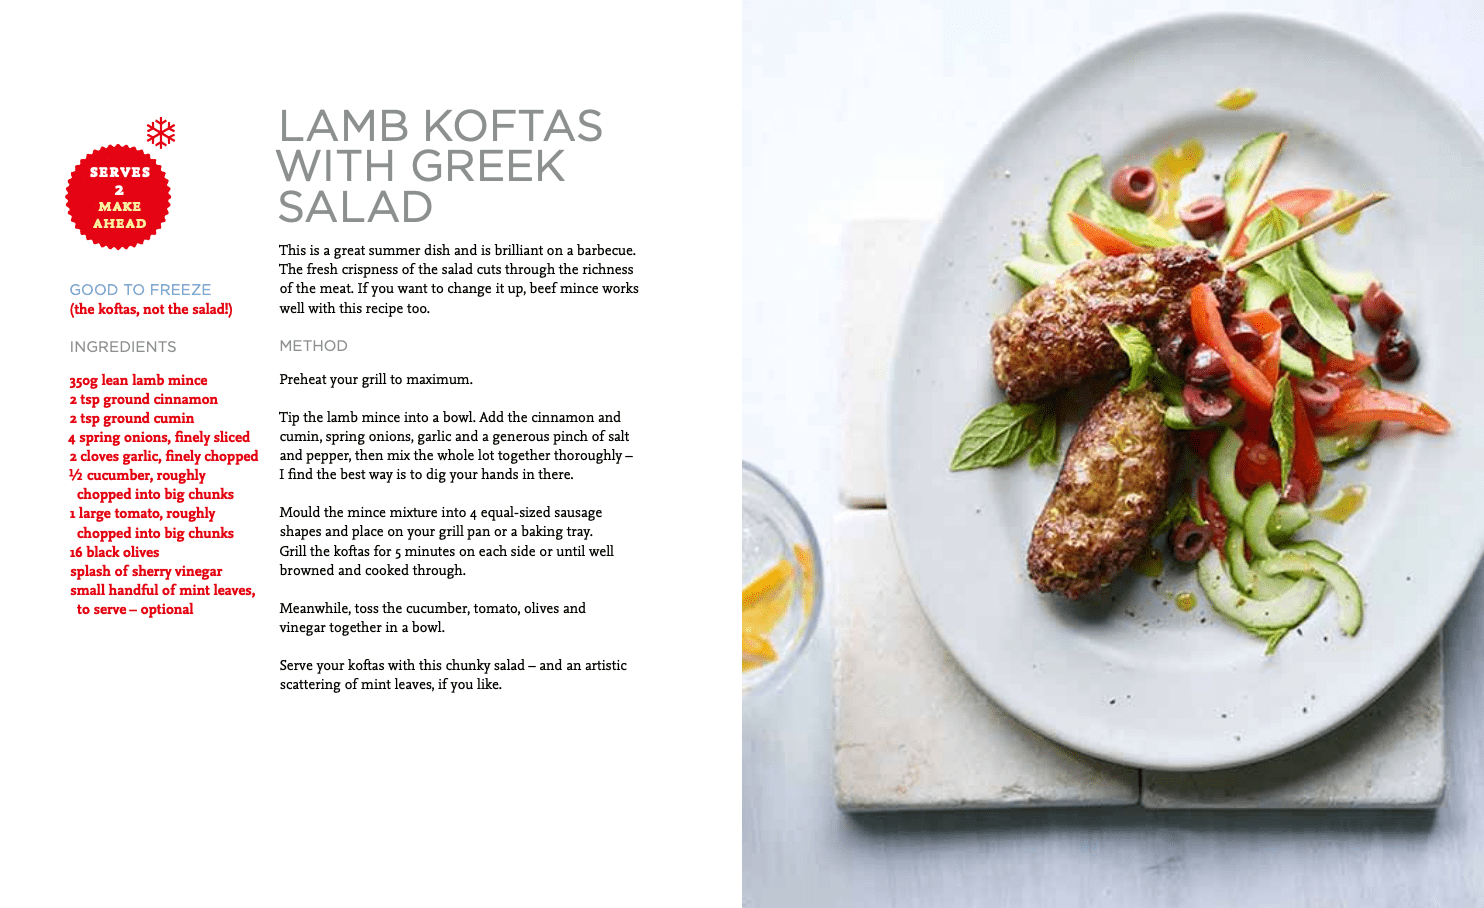 Lamb Koftas recipe Joe Wicks